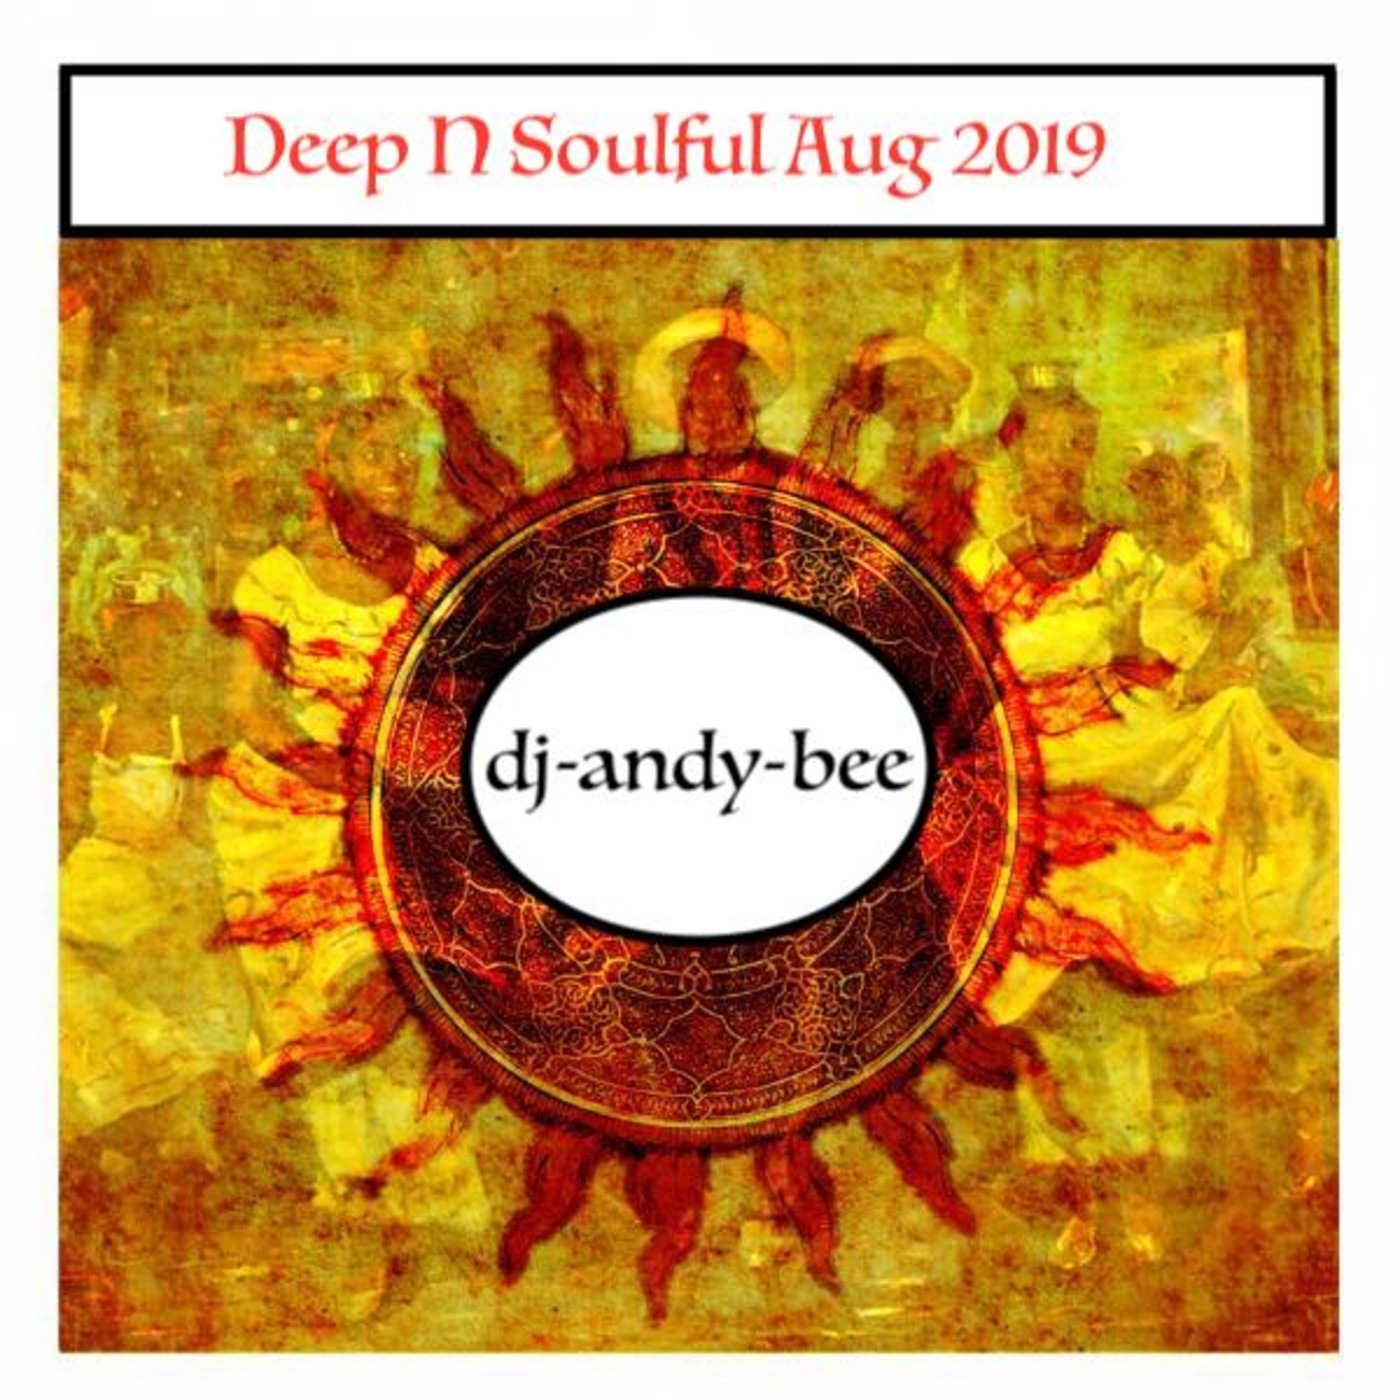 dj-andy-bee Deep n Soulful House # Urban Soul Podcast